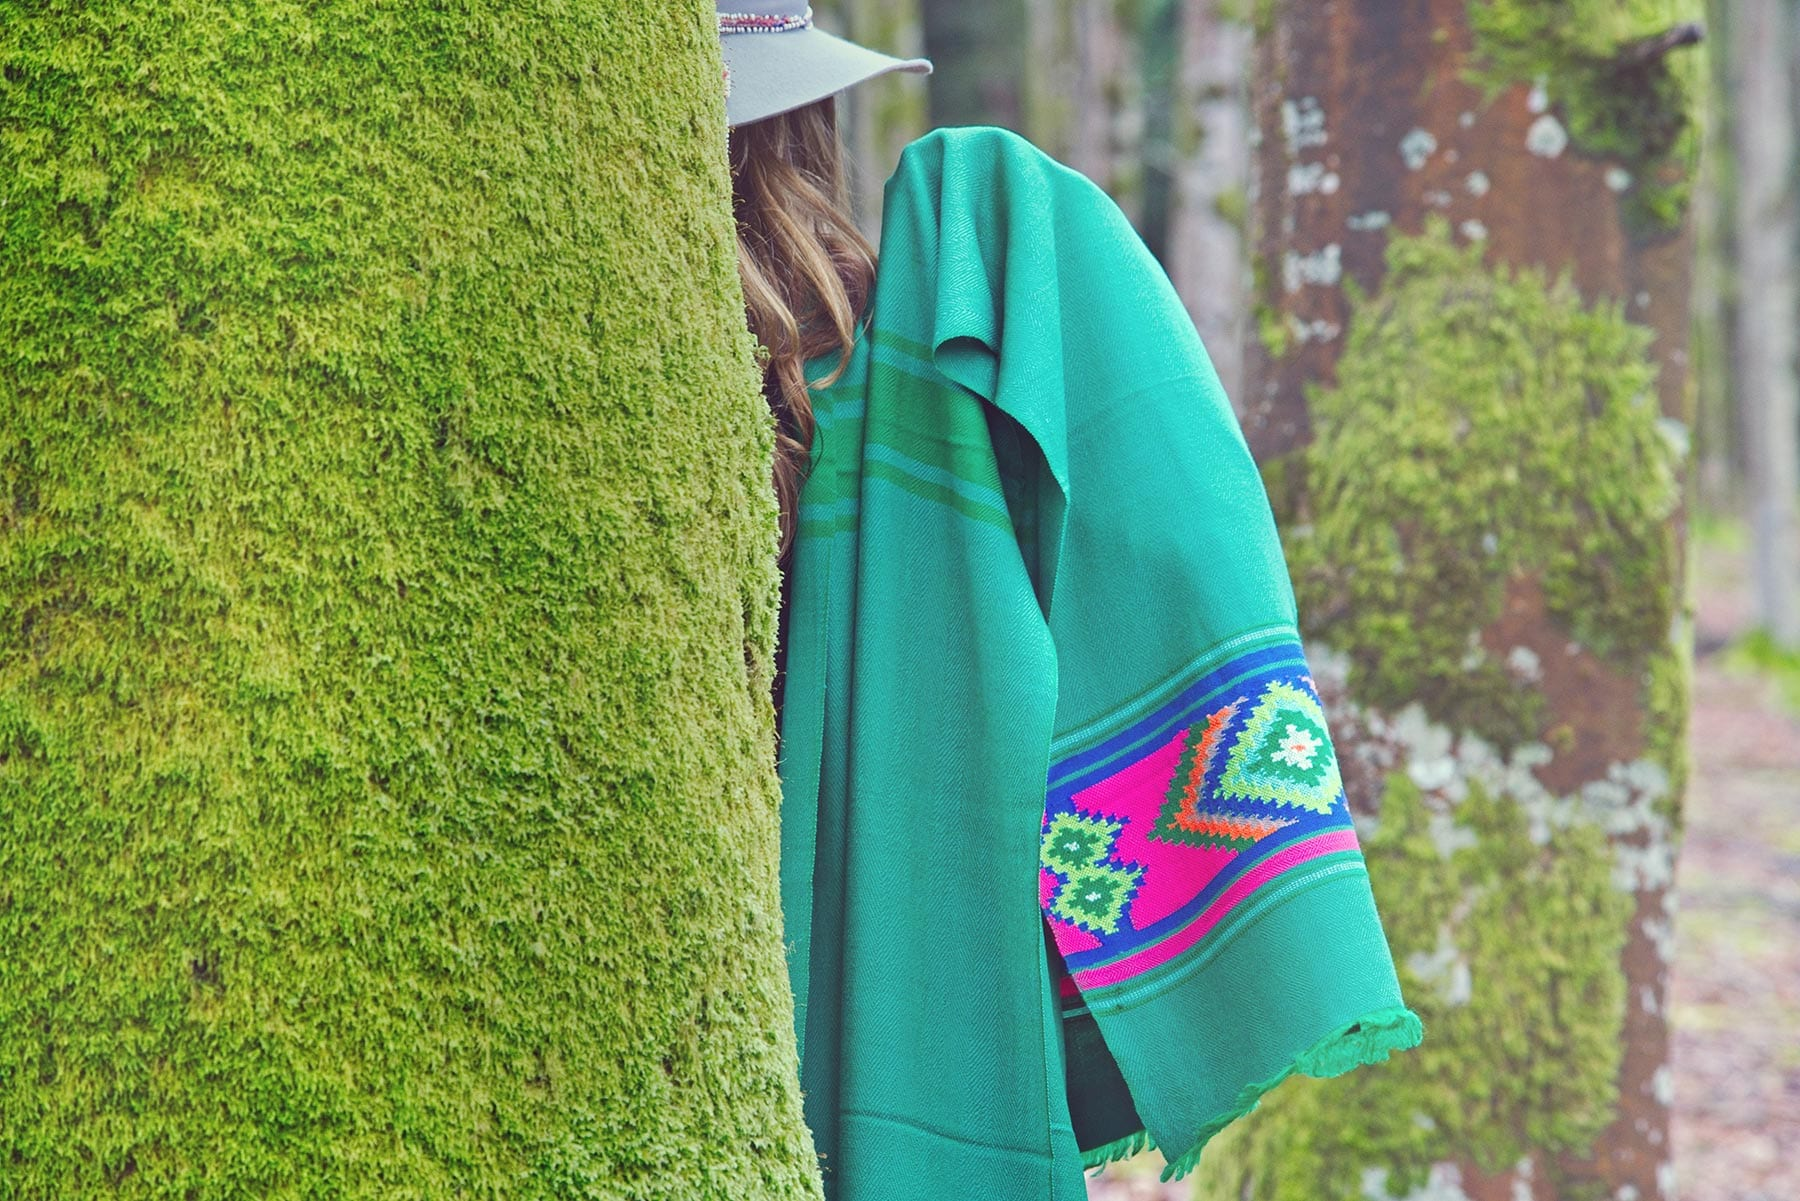 Beshlie McKelvie scarves - buy sustainable fashion scarves - bright green scarf with aztec pattern